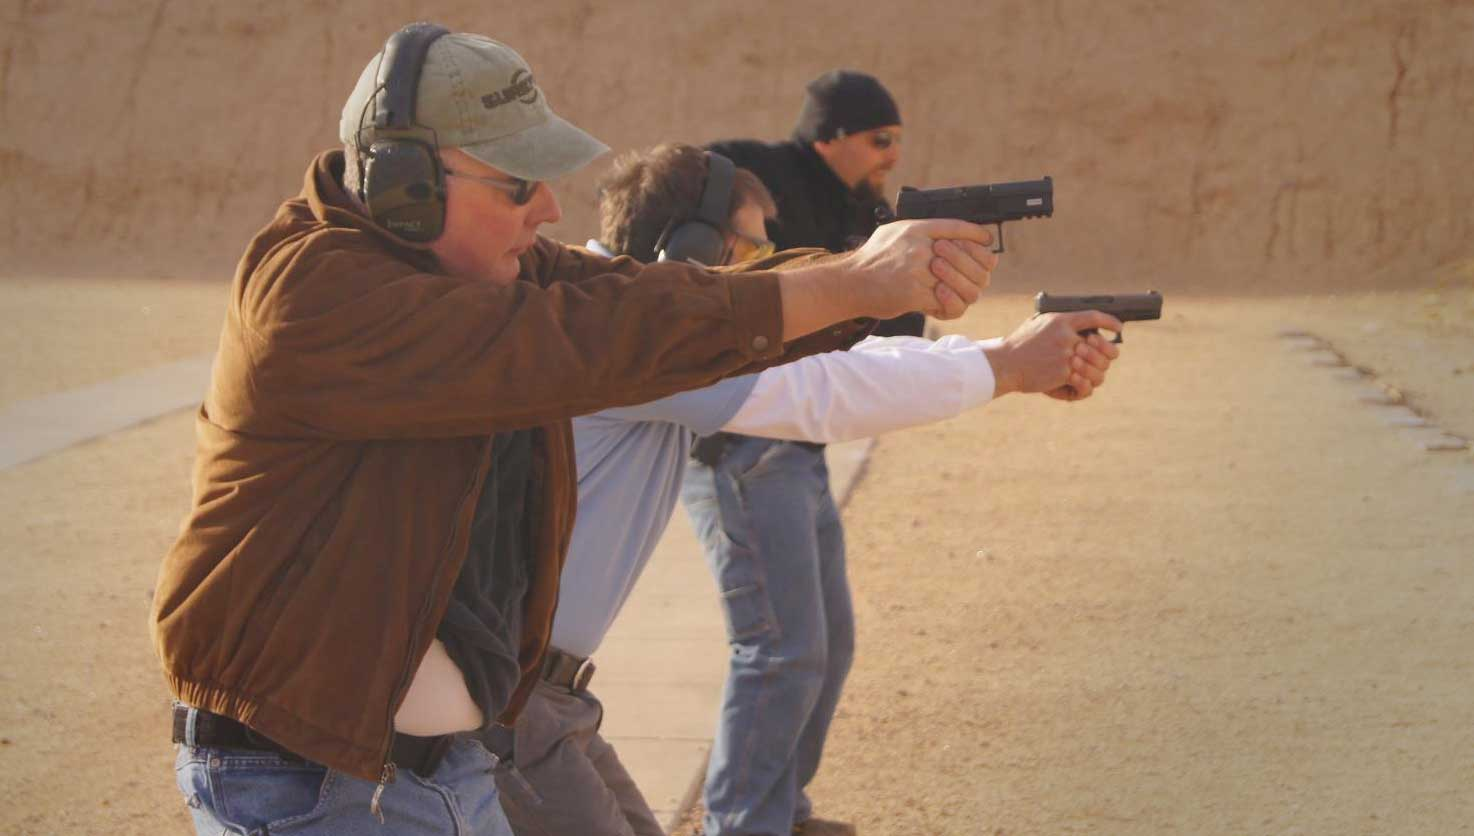 Firearms Training In SW Florida